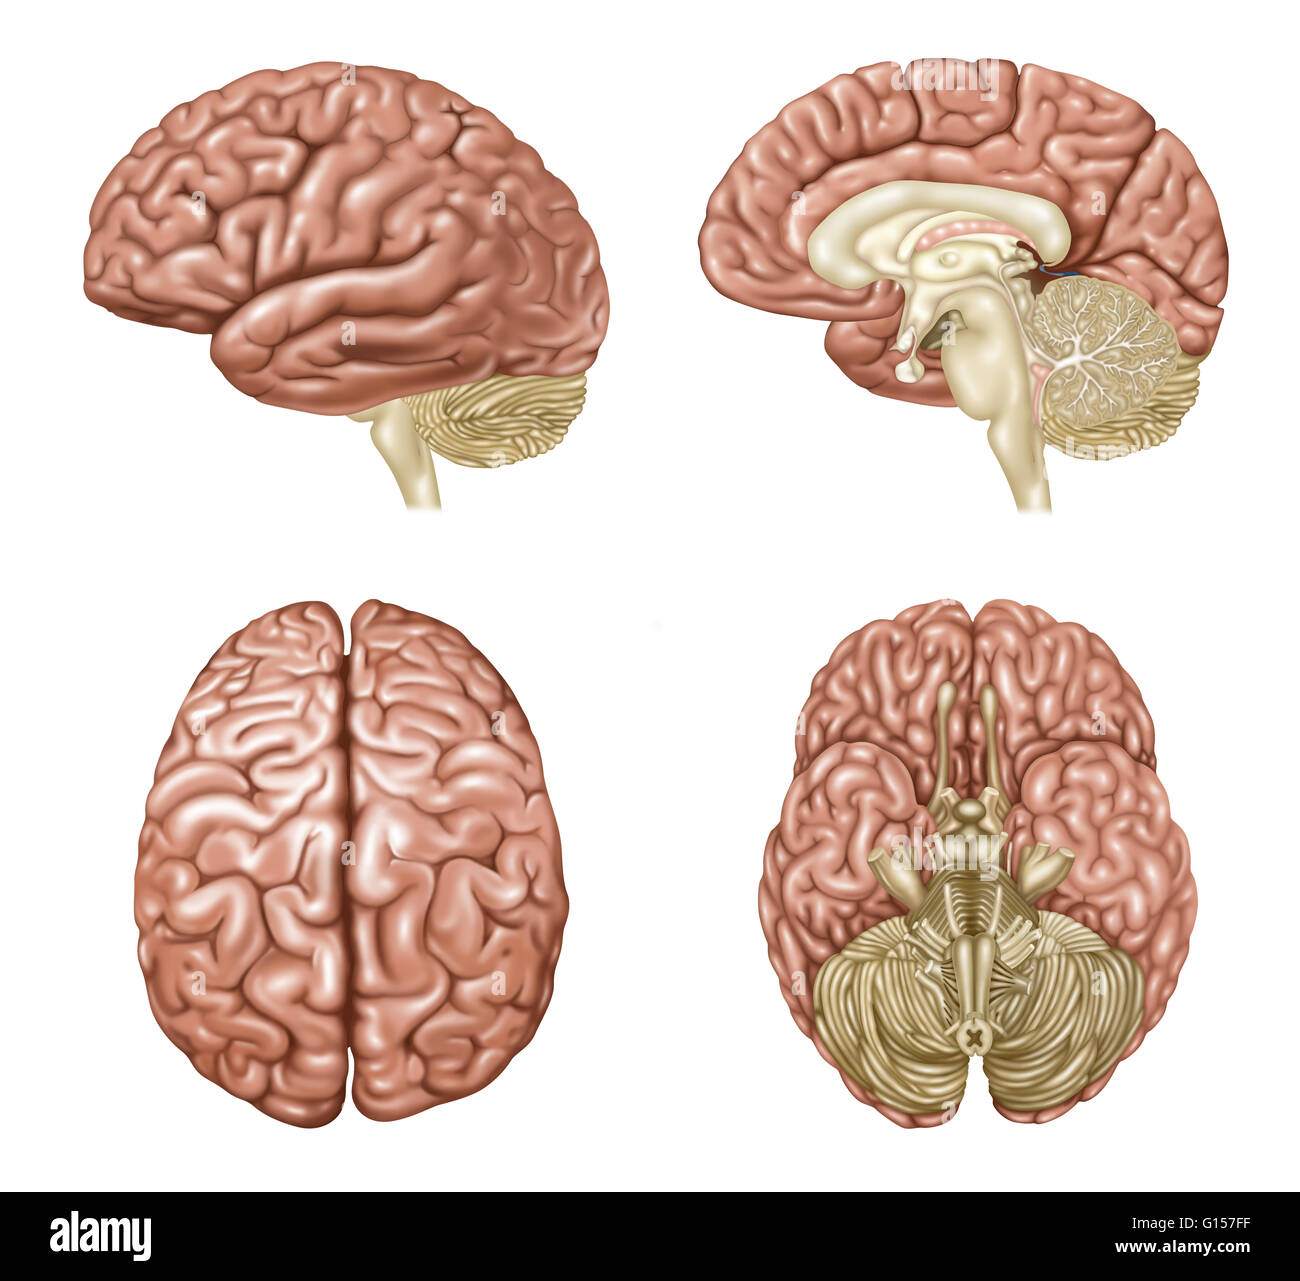 Illustration showing anatomy of a normal brain in lateral ...